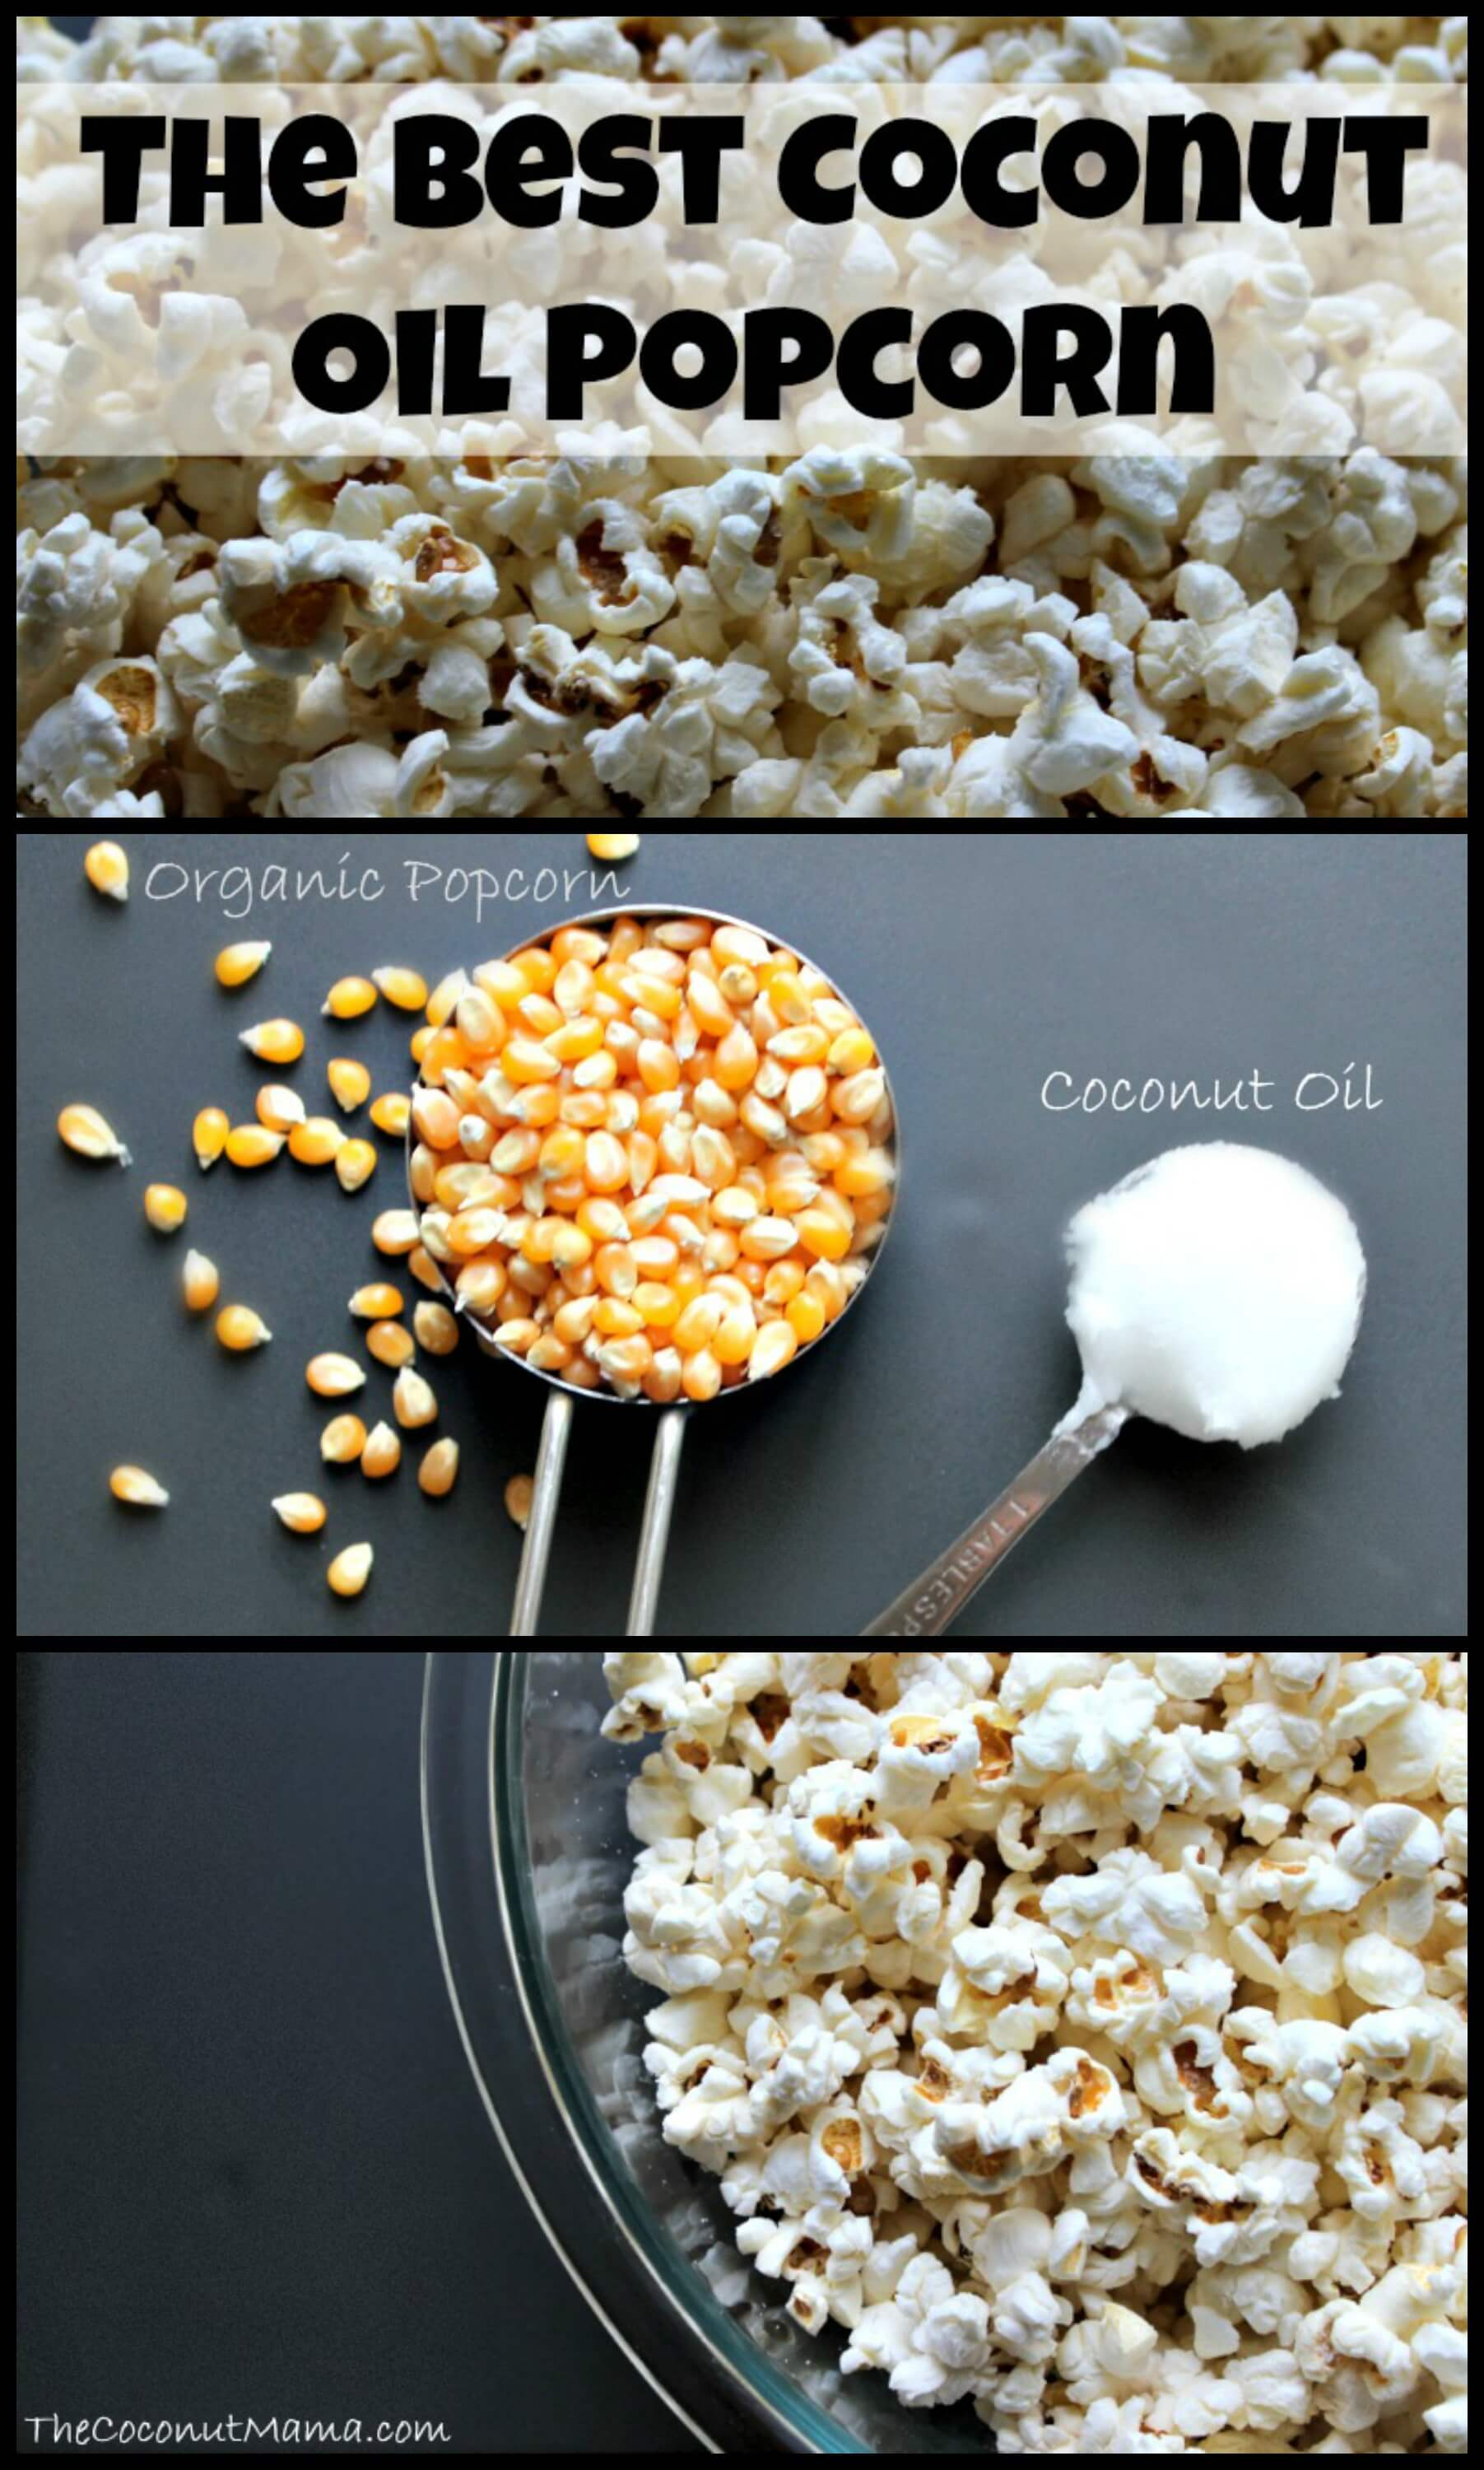 The BEST Coconut Oil Popcorn